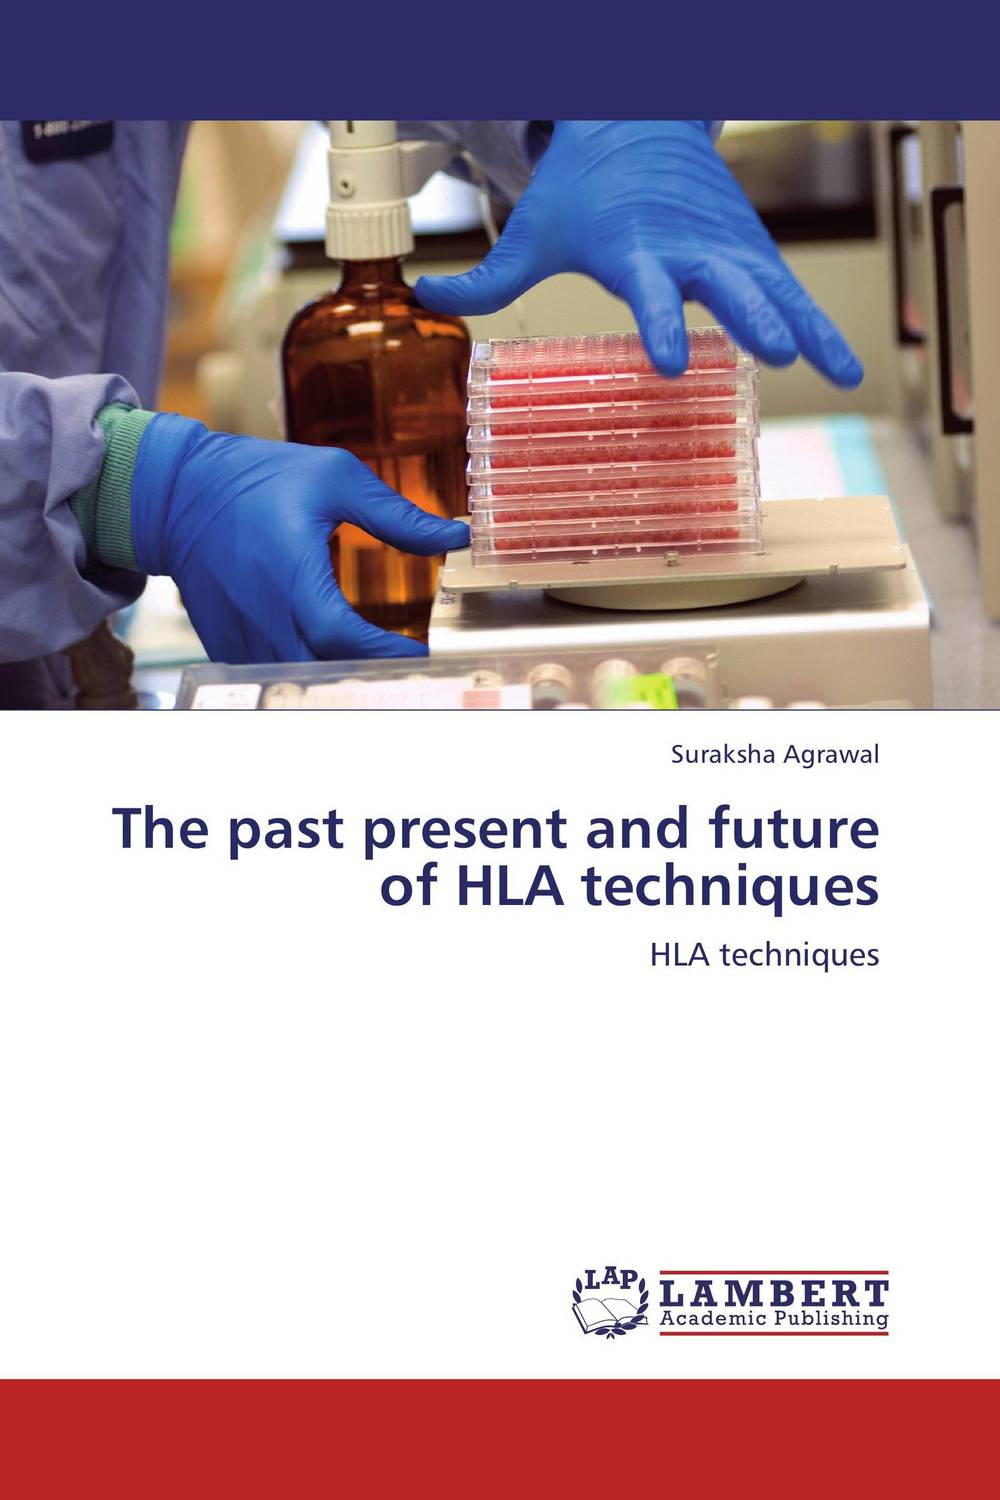 The past present and future of HLA techniques